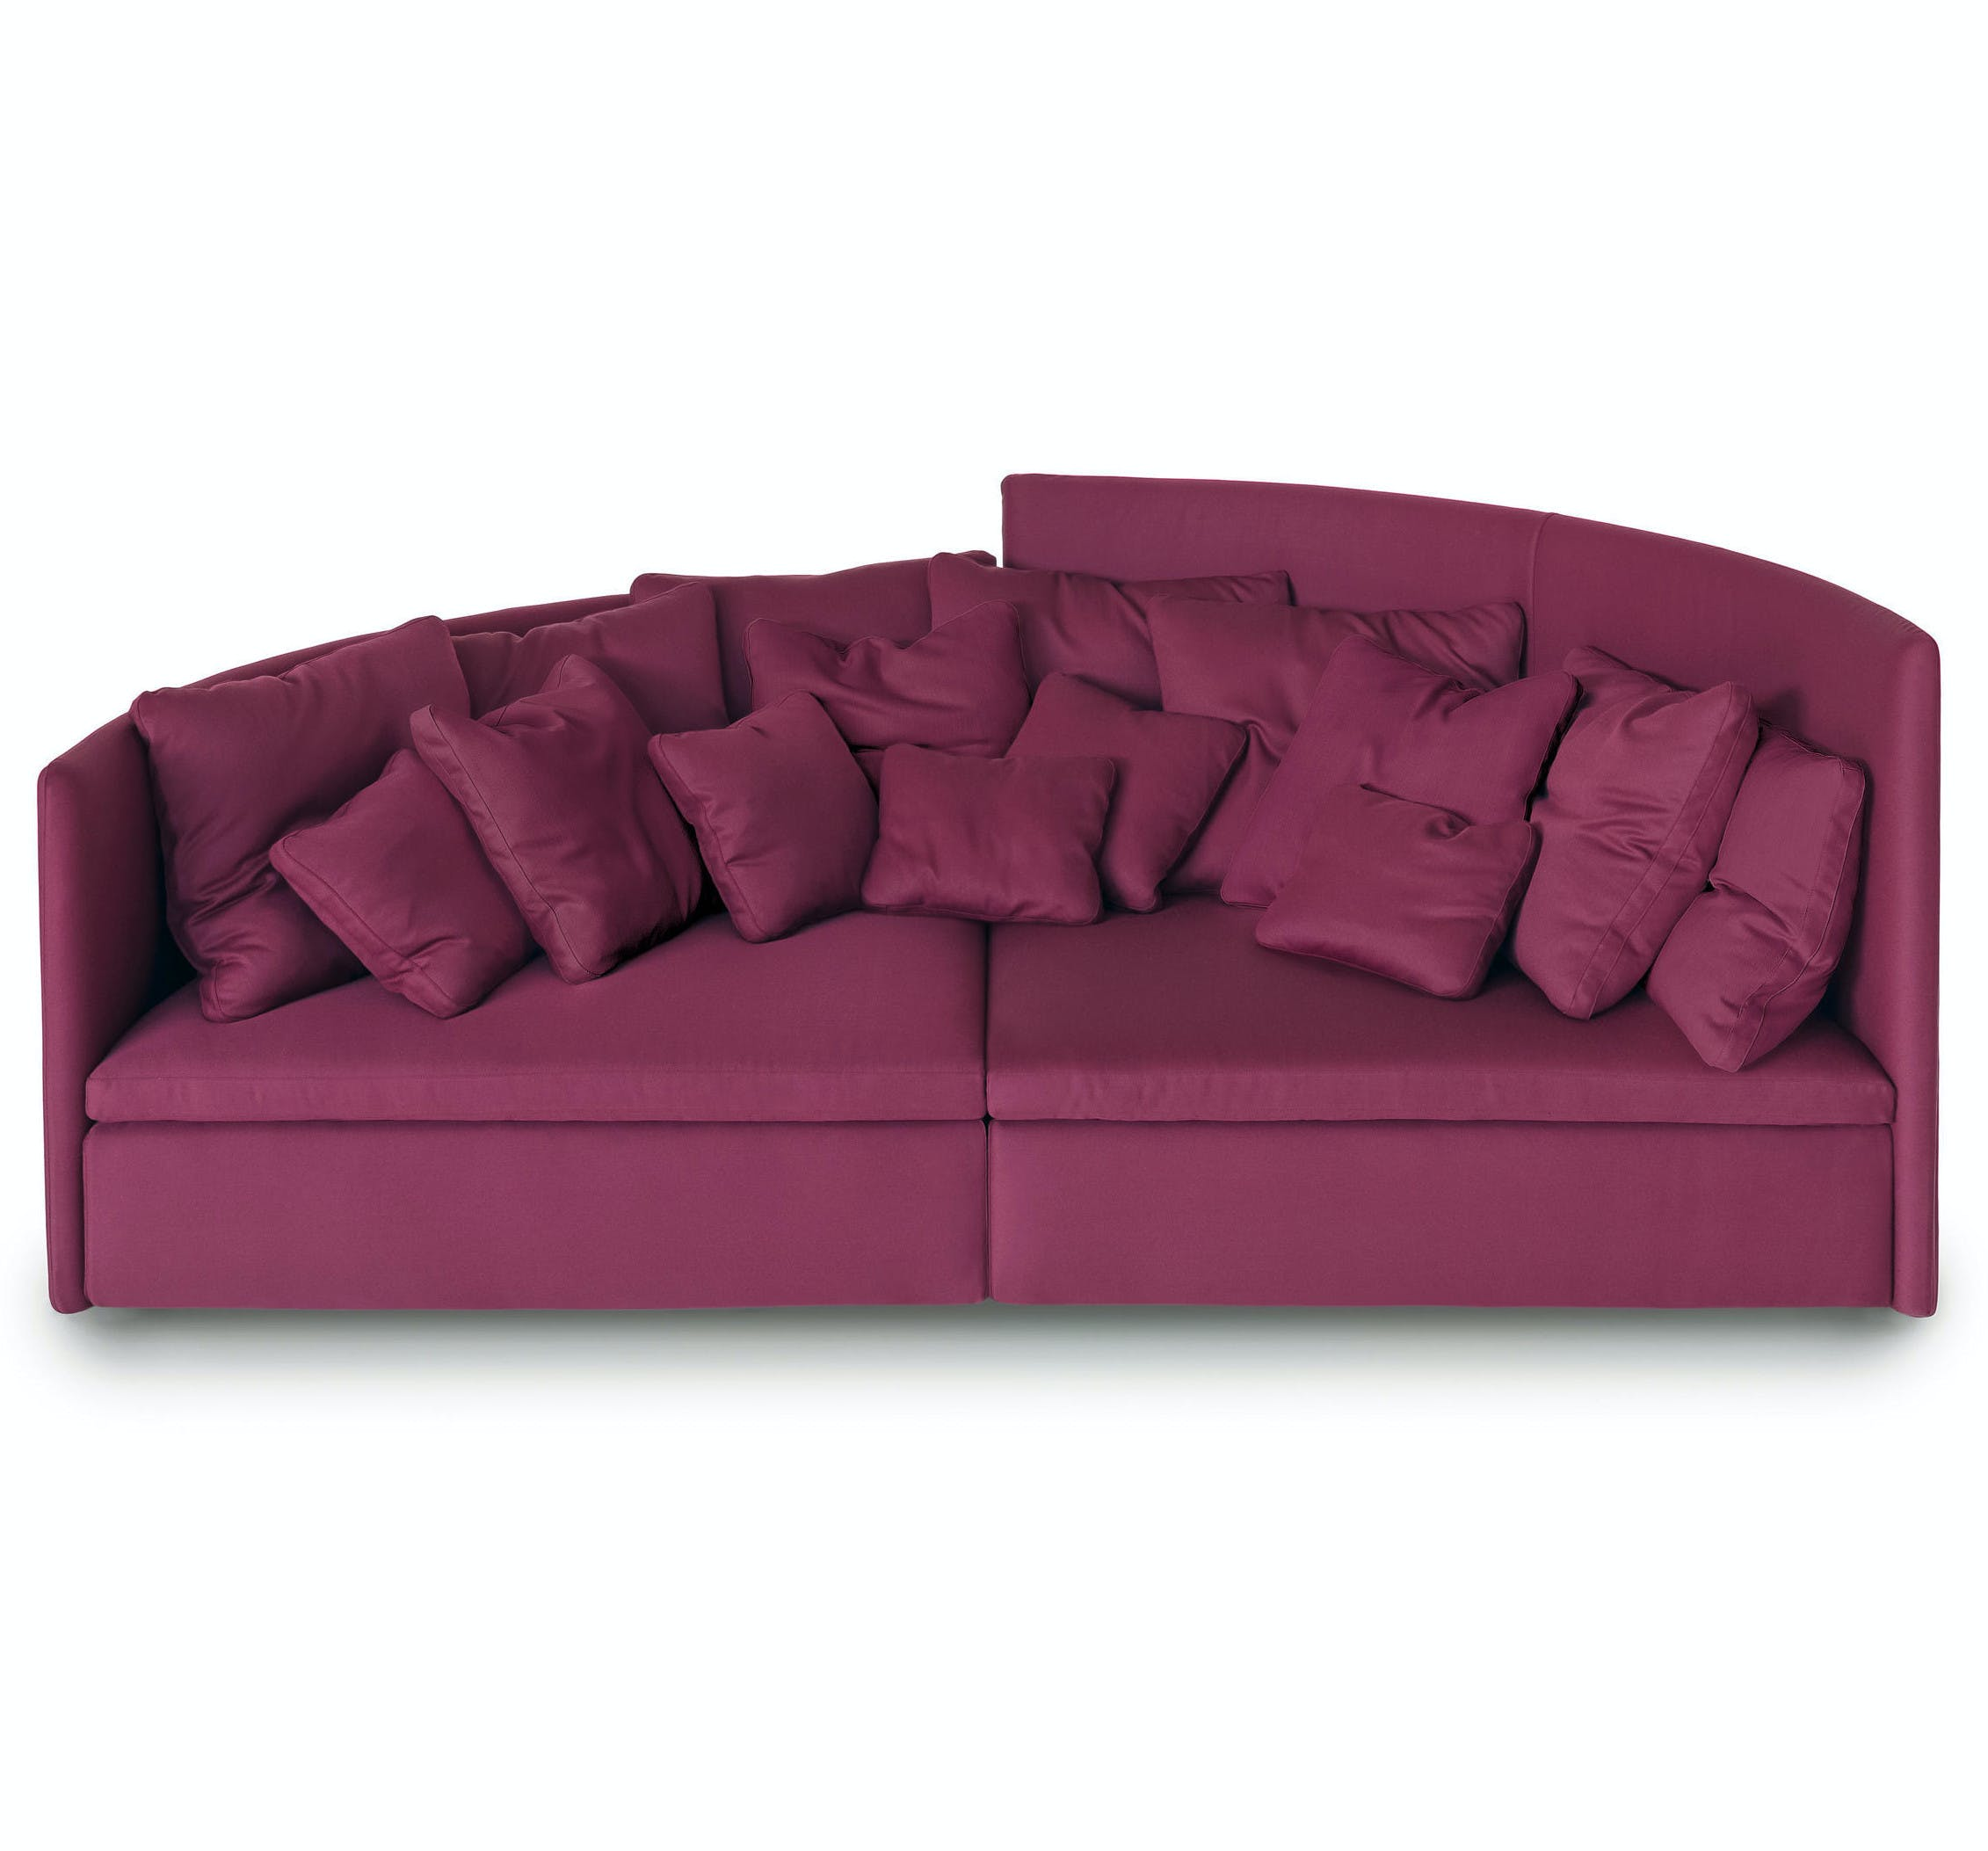 Arflex Fuschia Mangold Two Piece Modular Sofa Haute Living